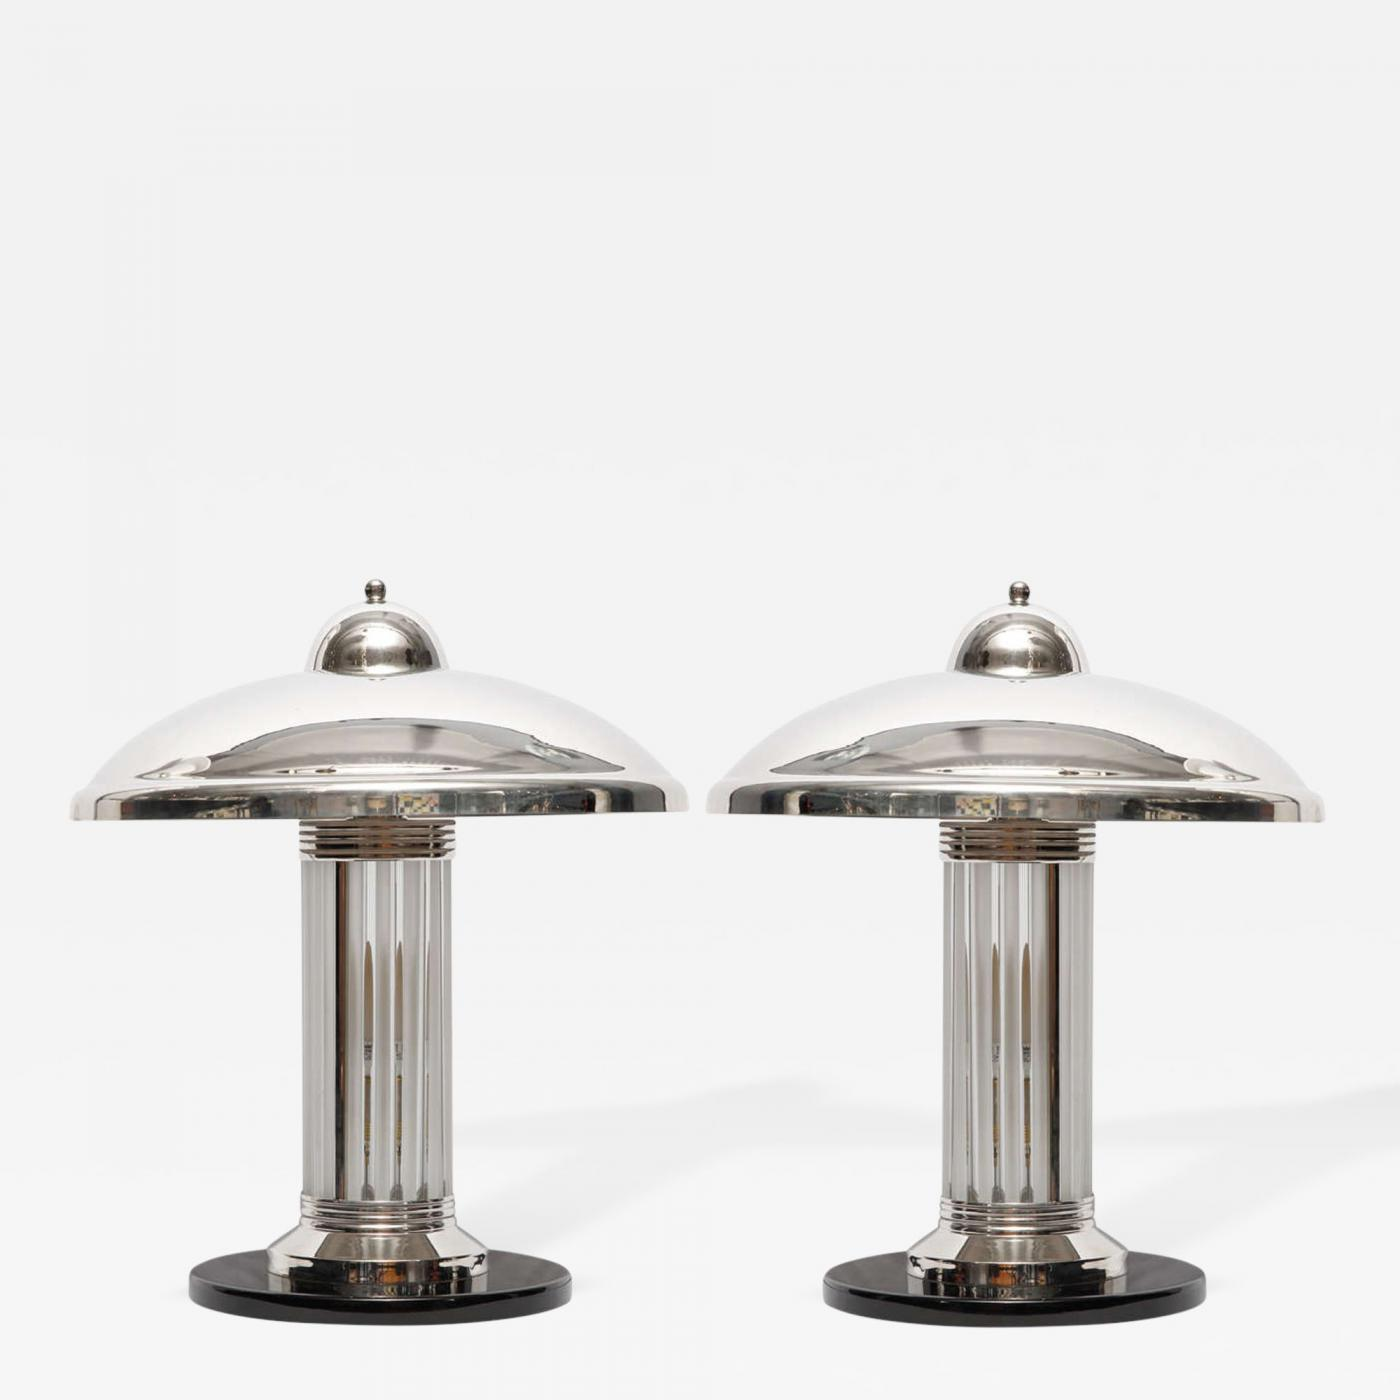 Pair of Art-Deco Table Lamps